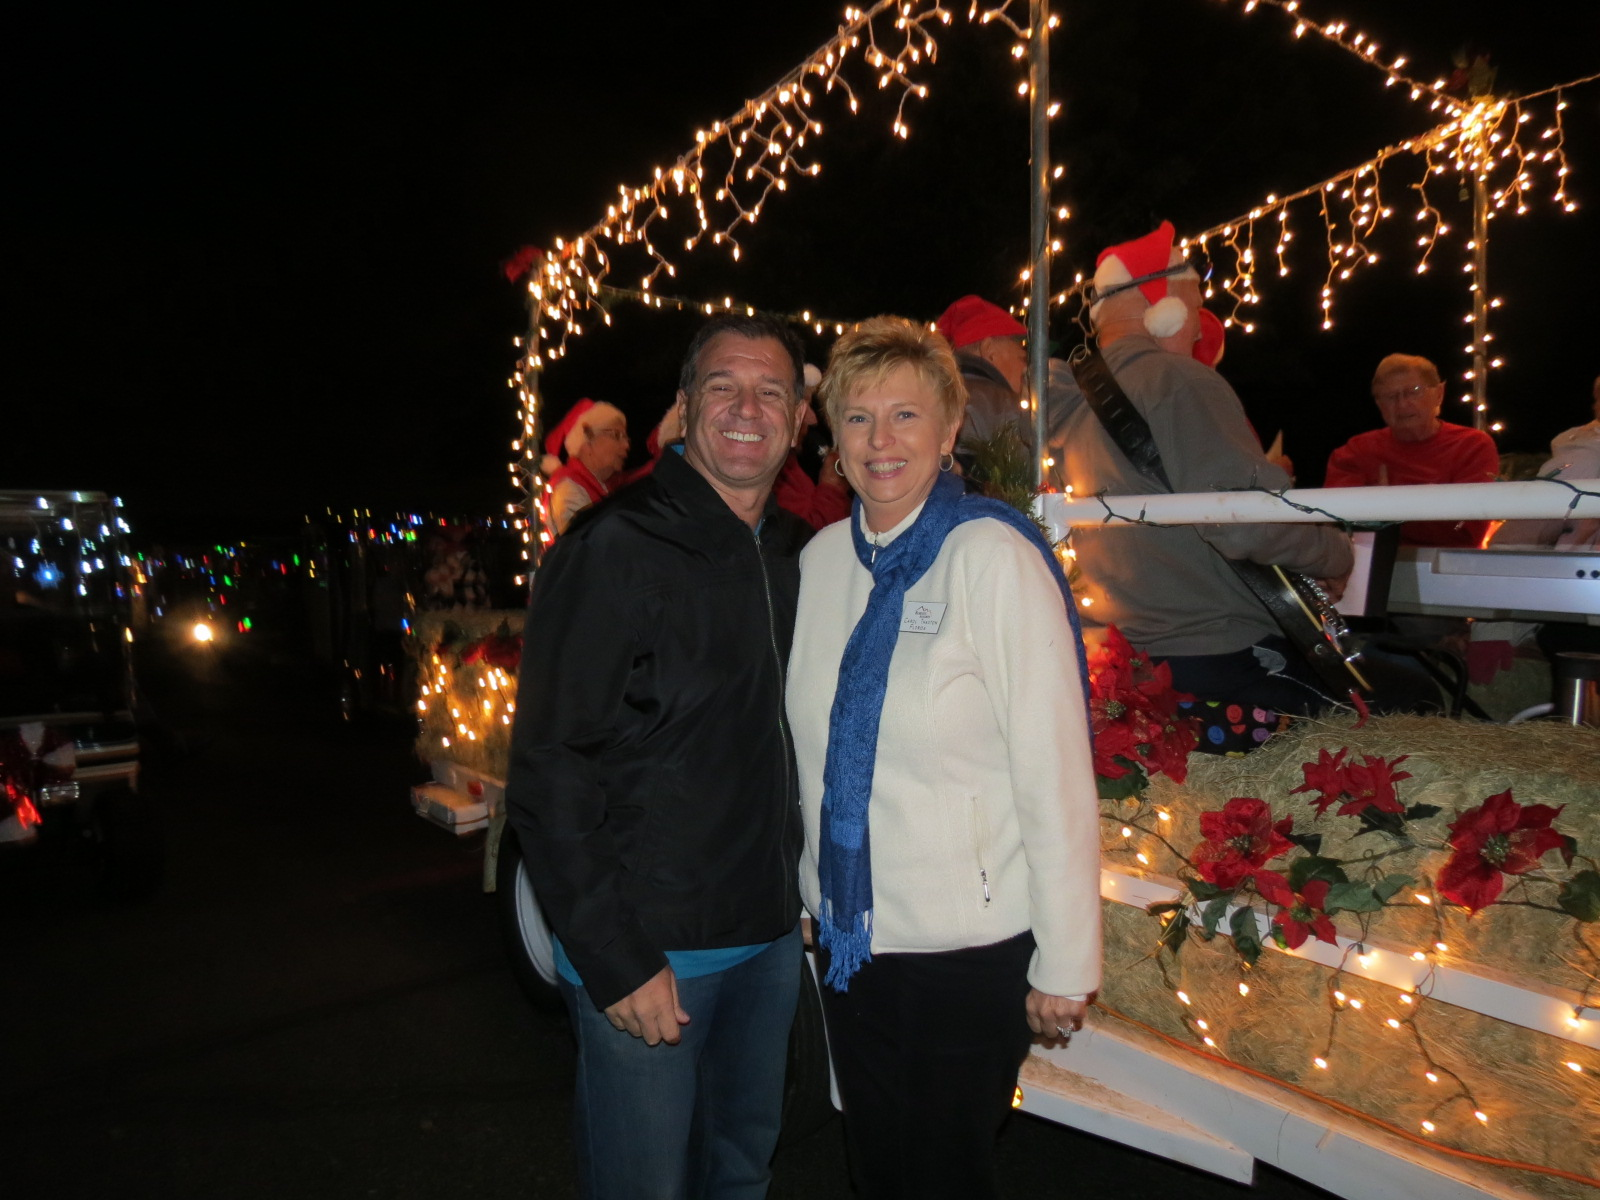 Lee & Carol caroling at parade